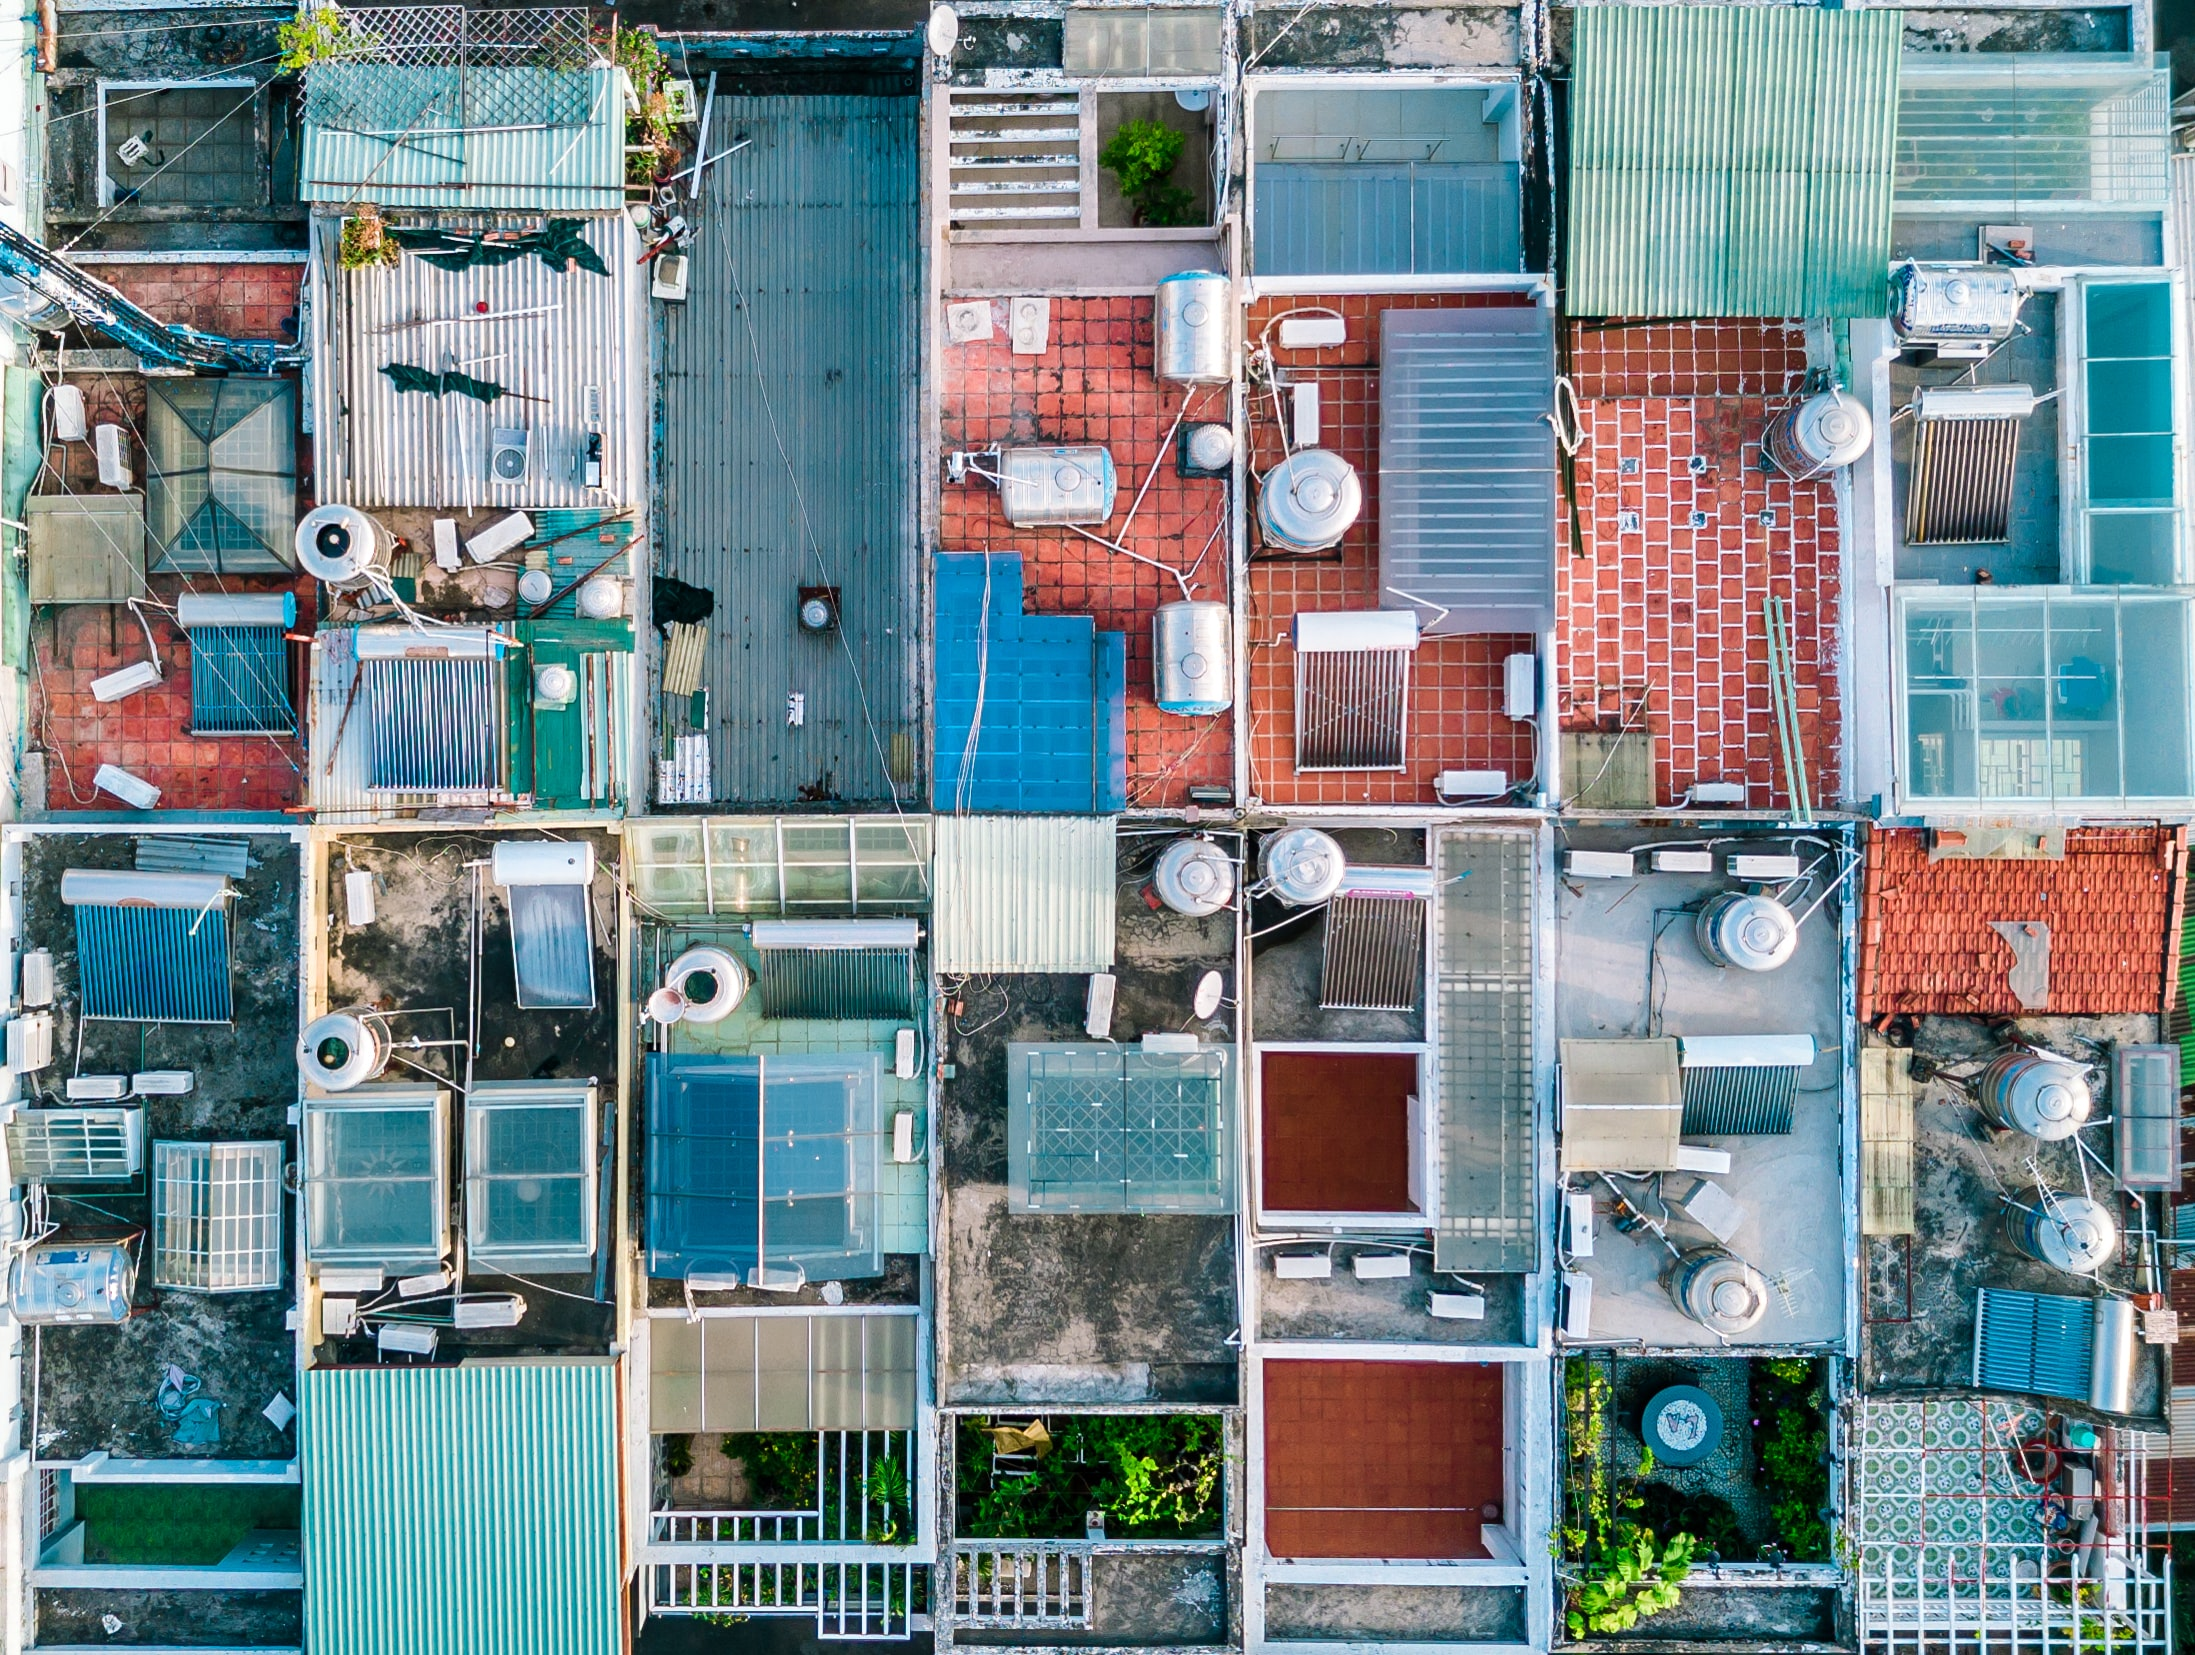 Drone view of home rooftops